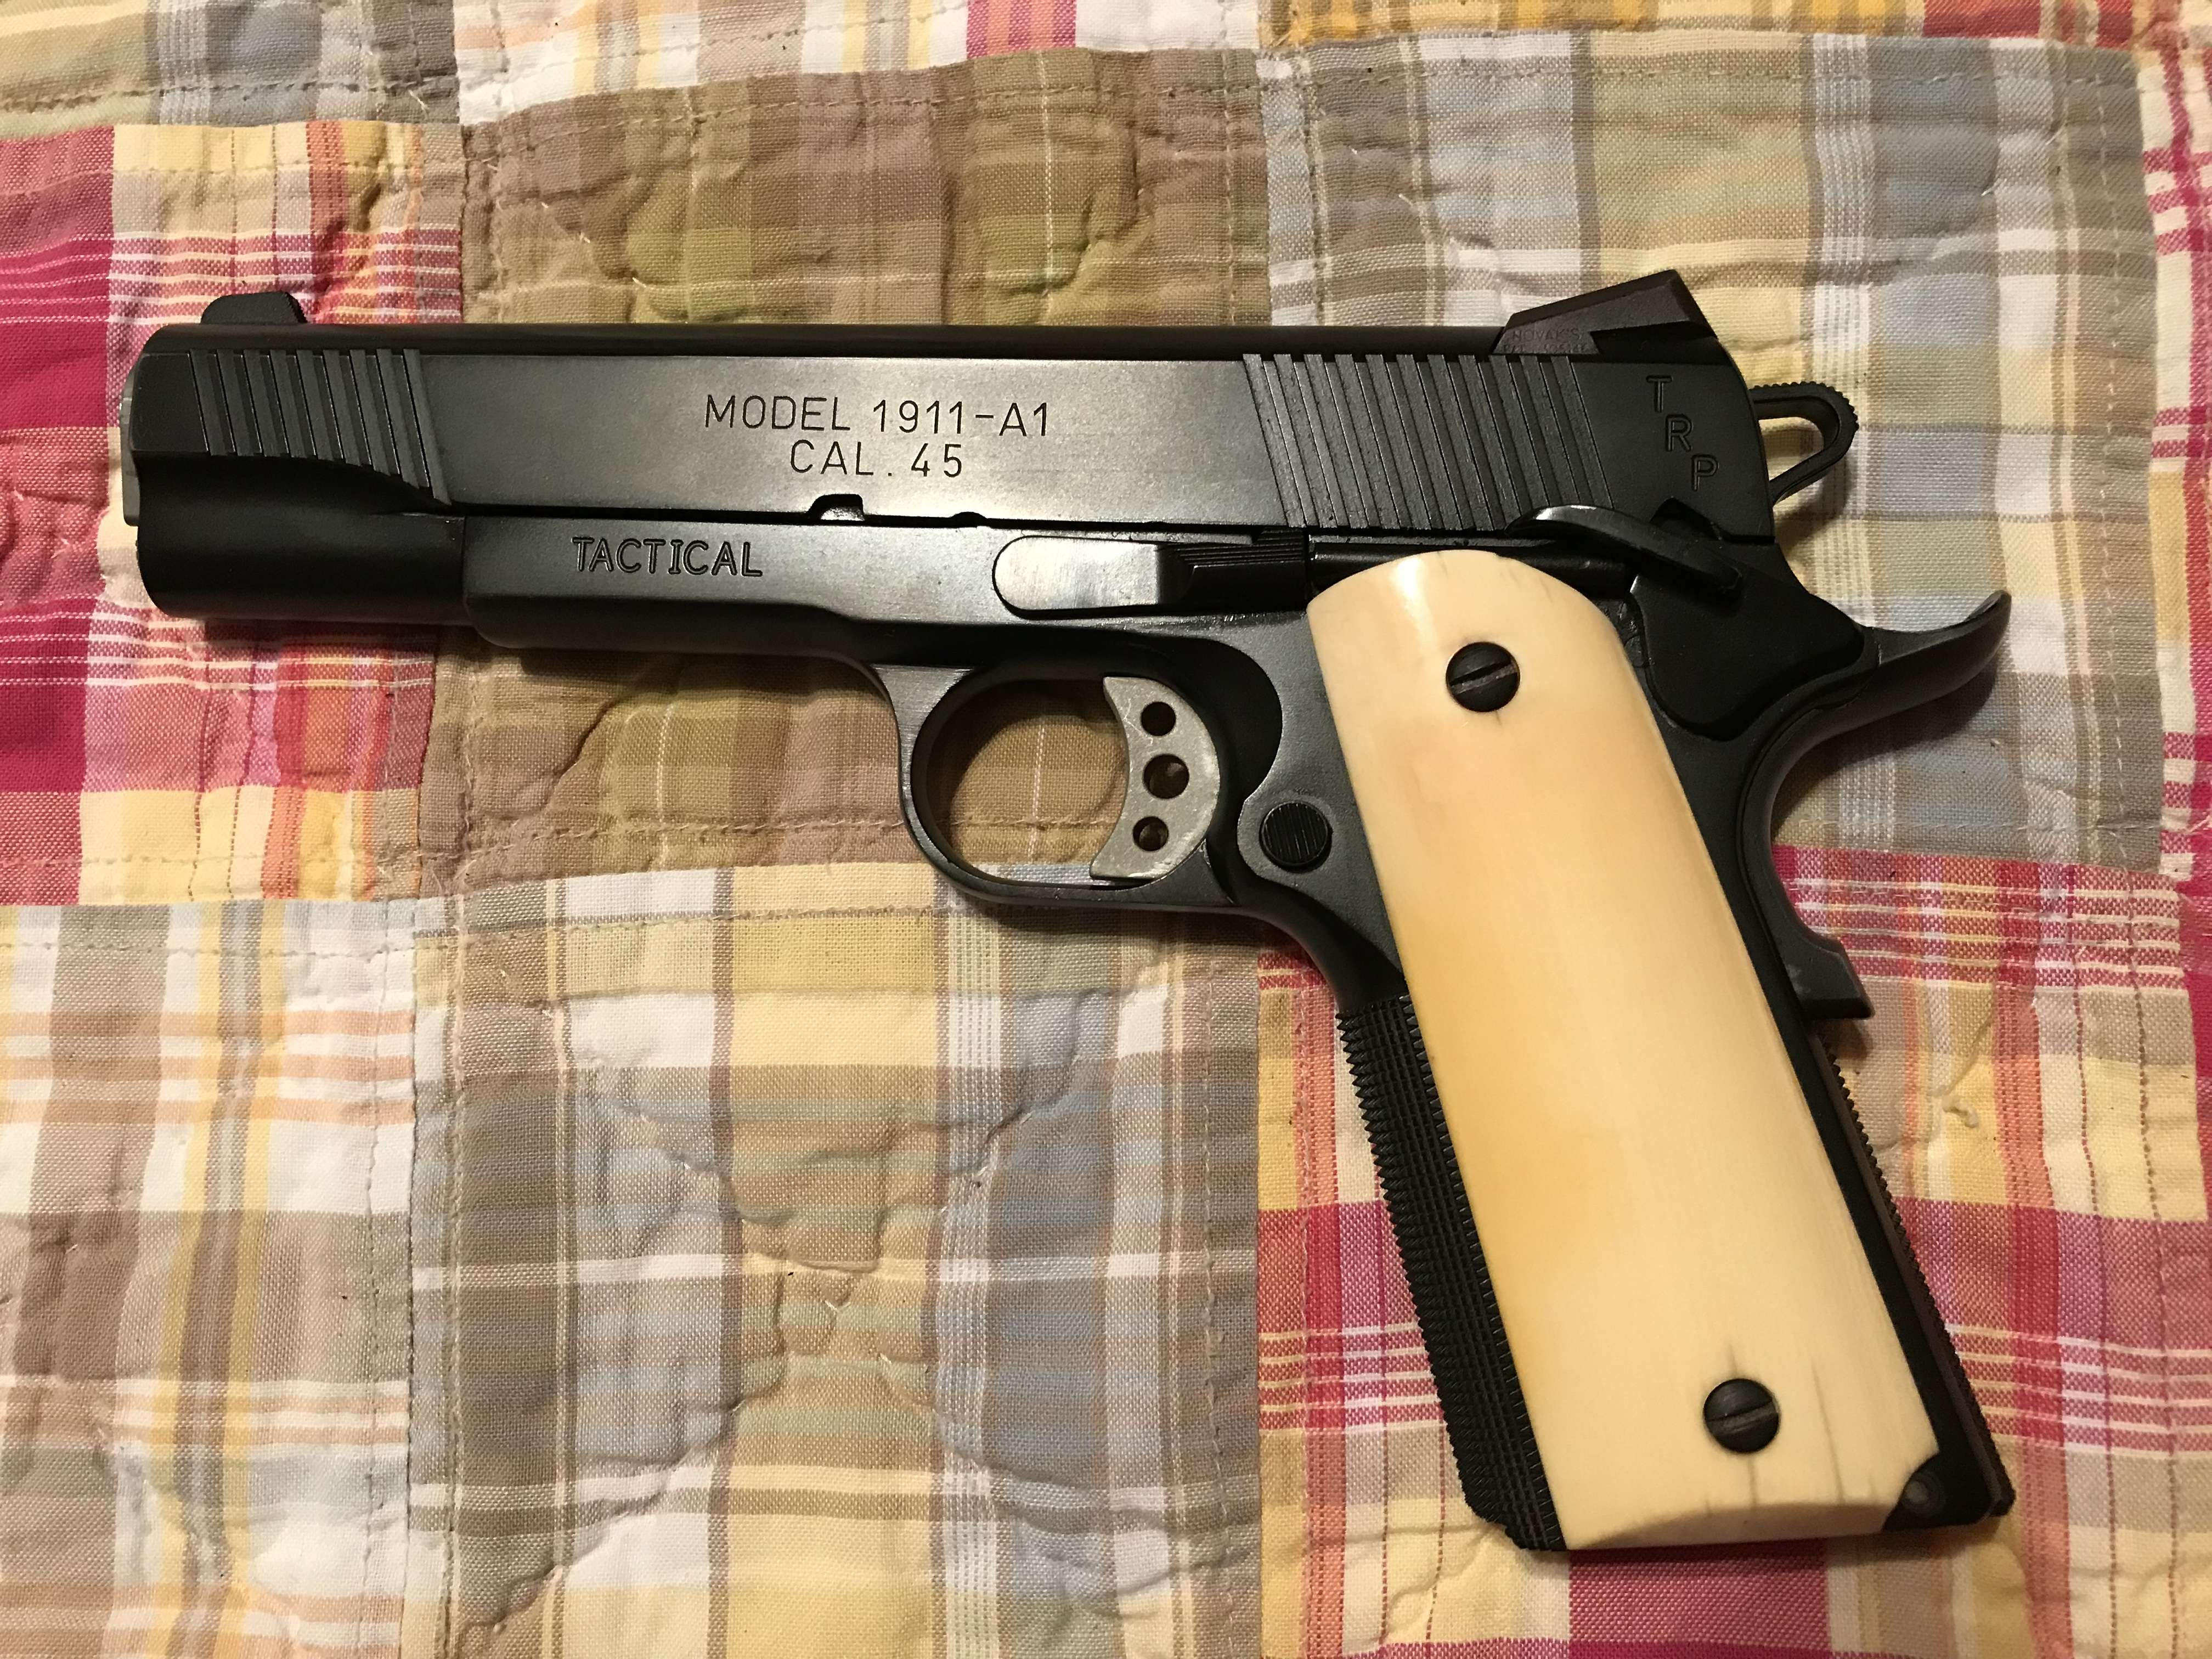 exotic grips for a 1911 - 24hourcampfire